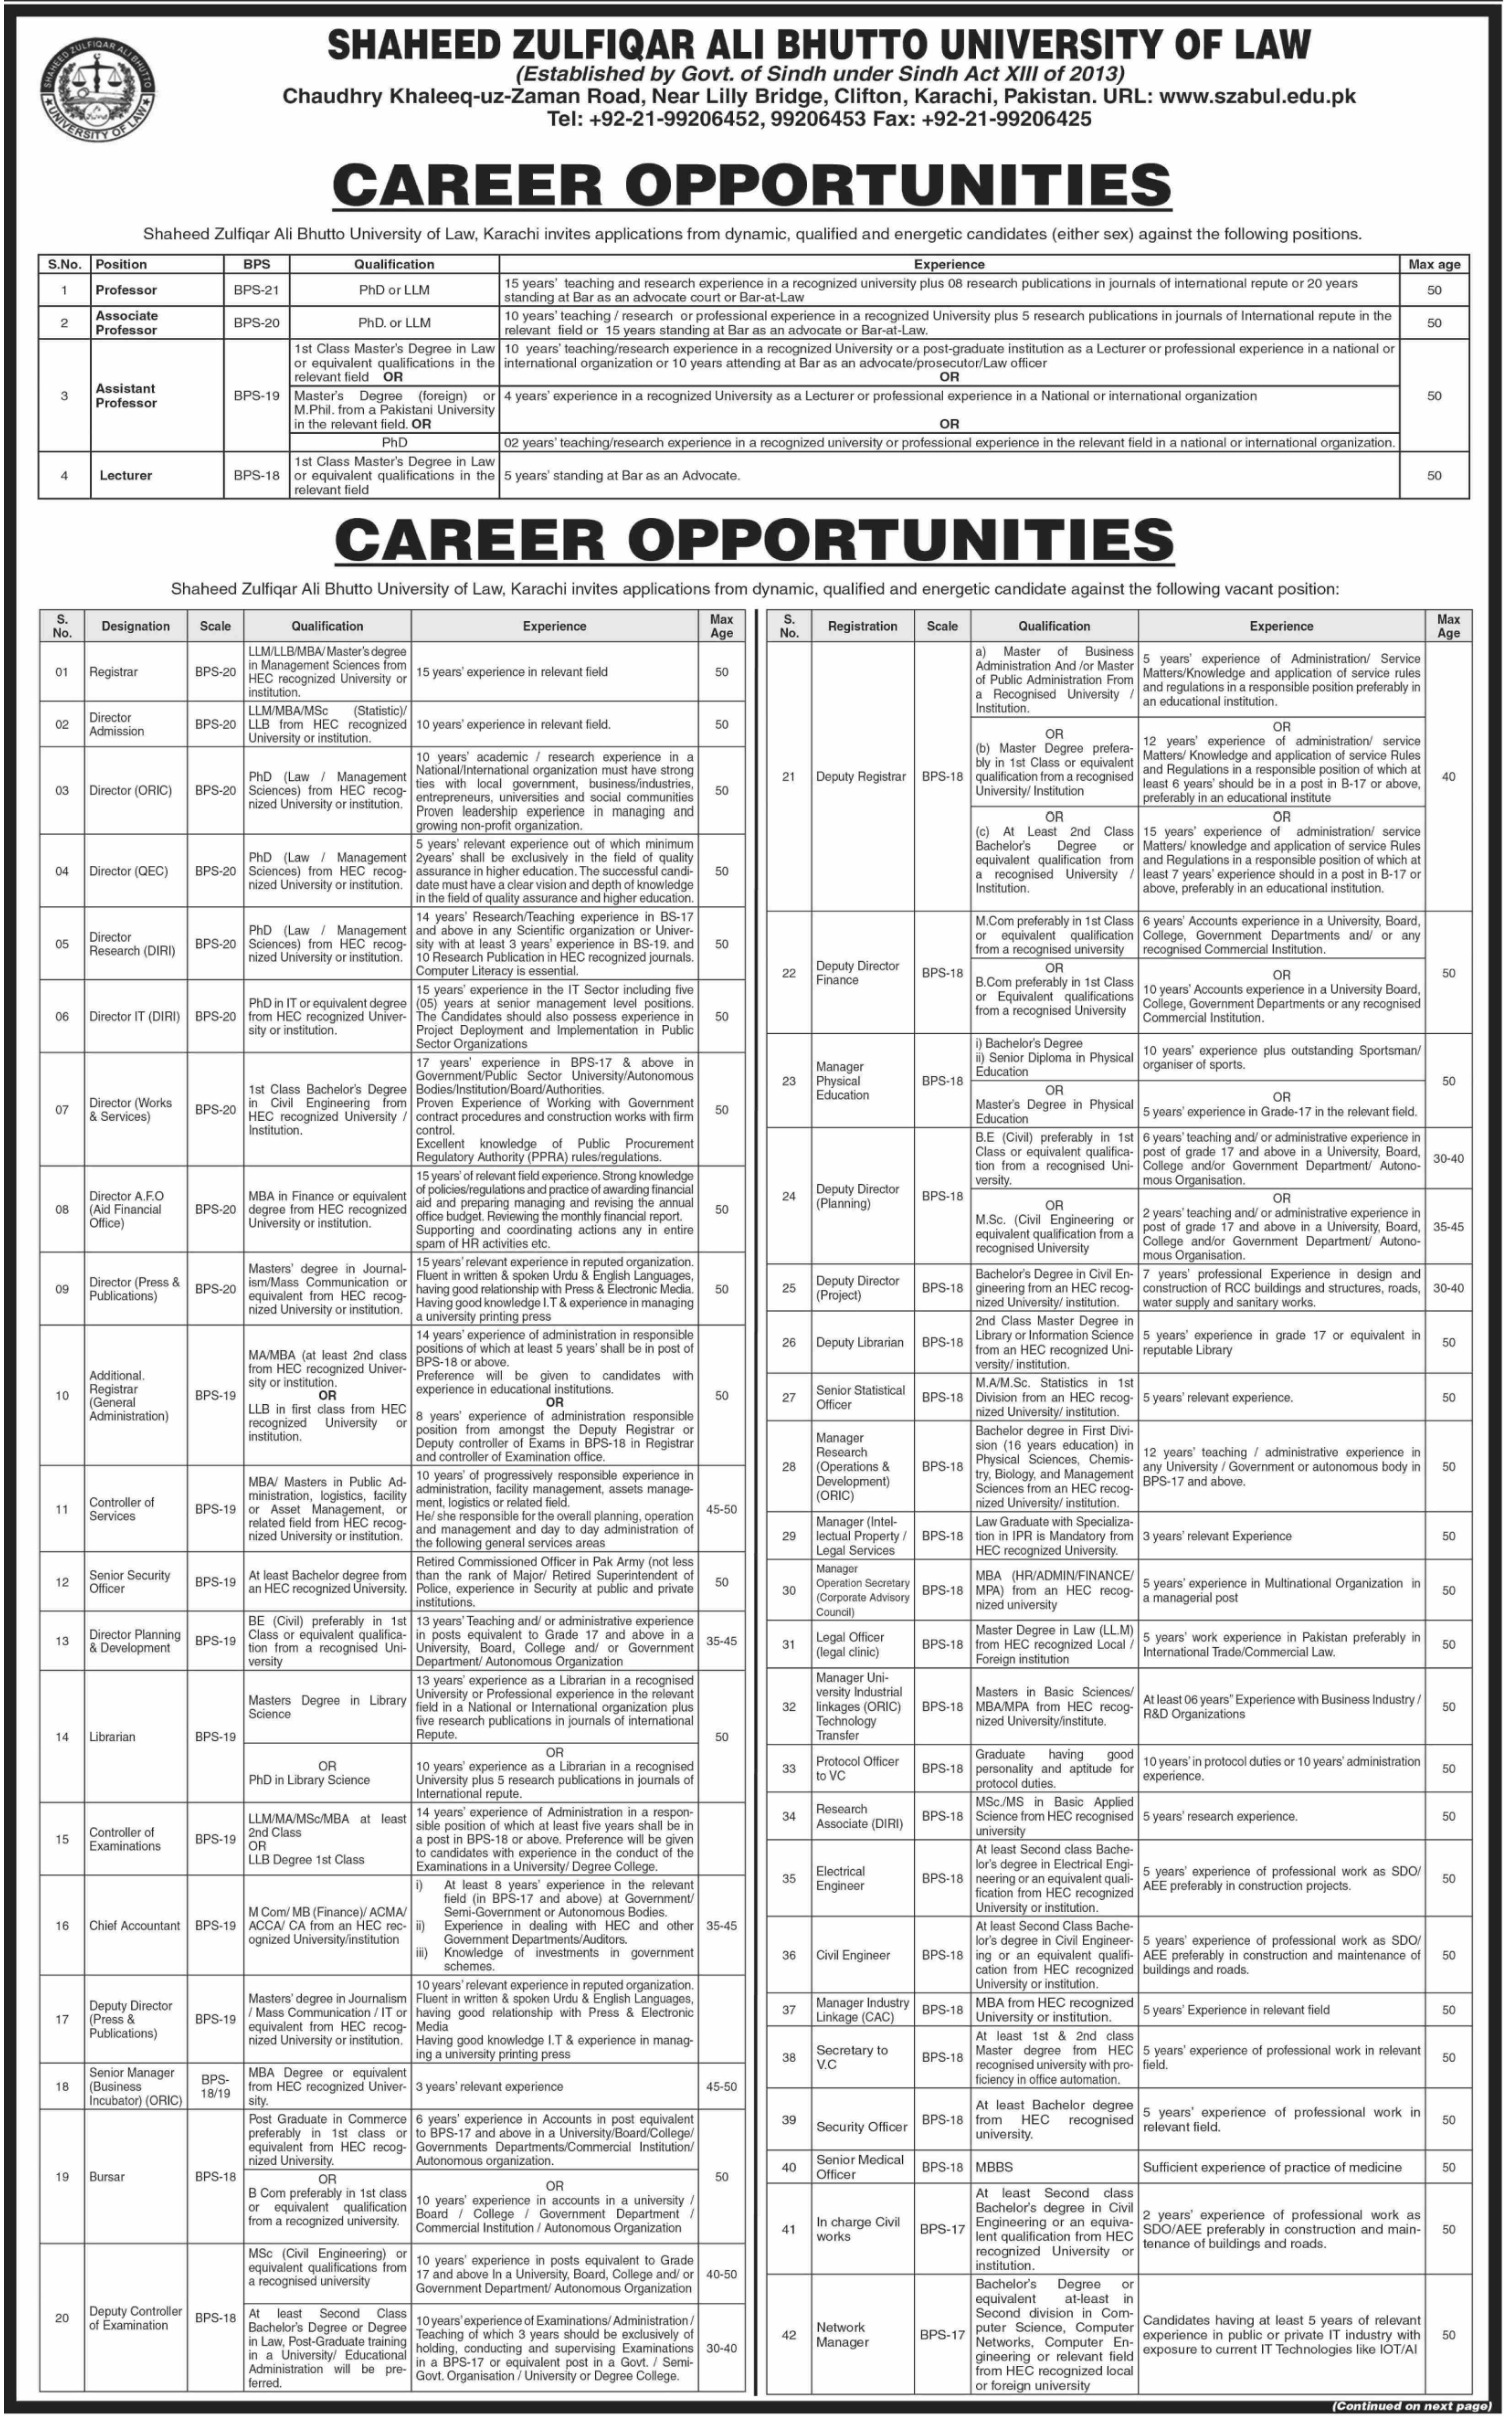 Shaheed Zulfiqar Ali Bhutto University of Law SZABUL Karachi Jobs 2019